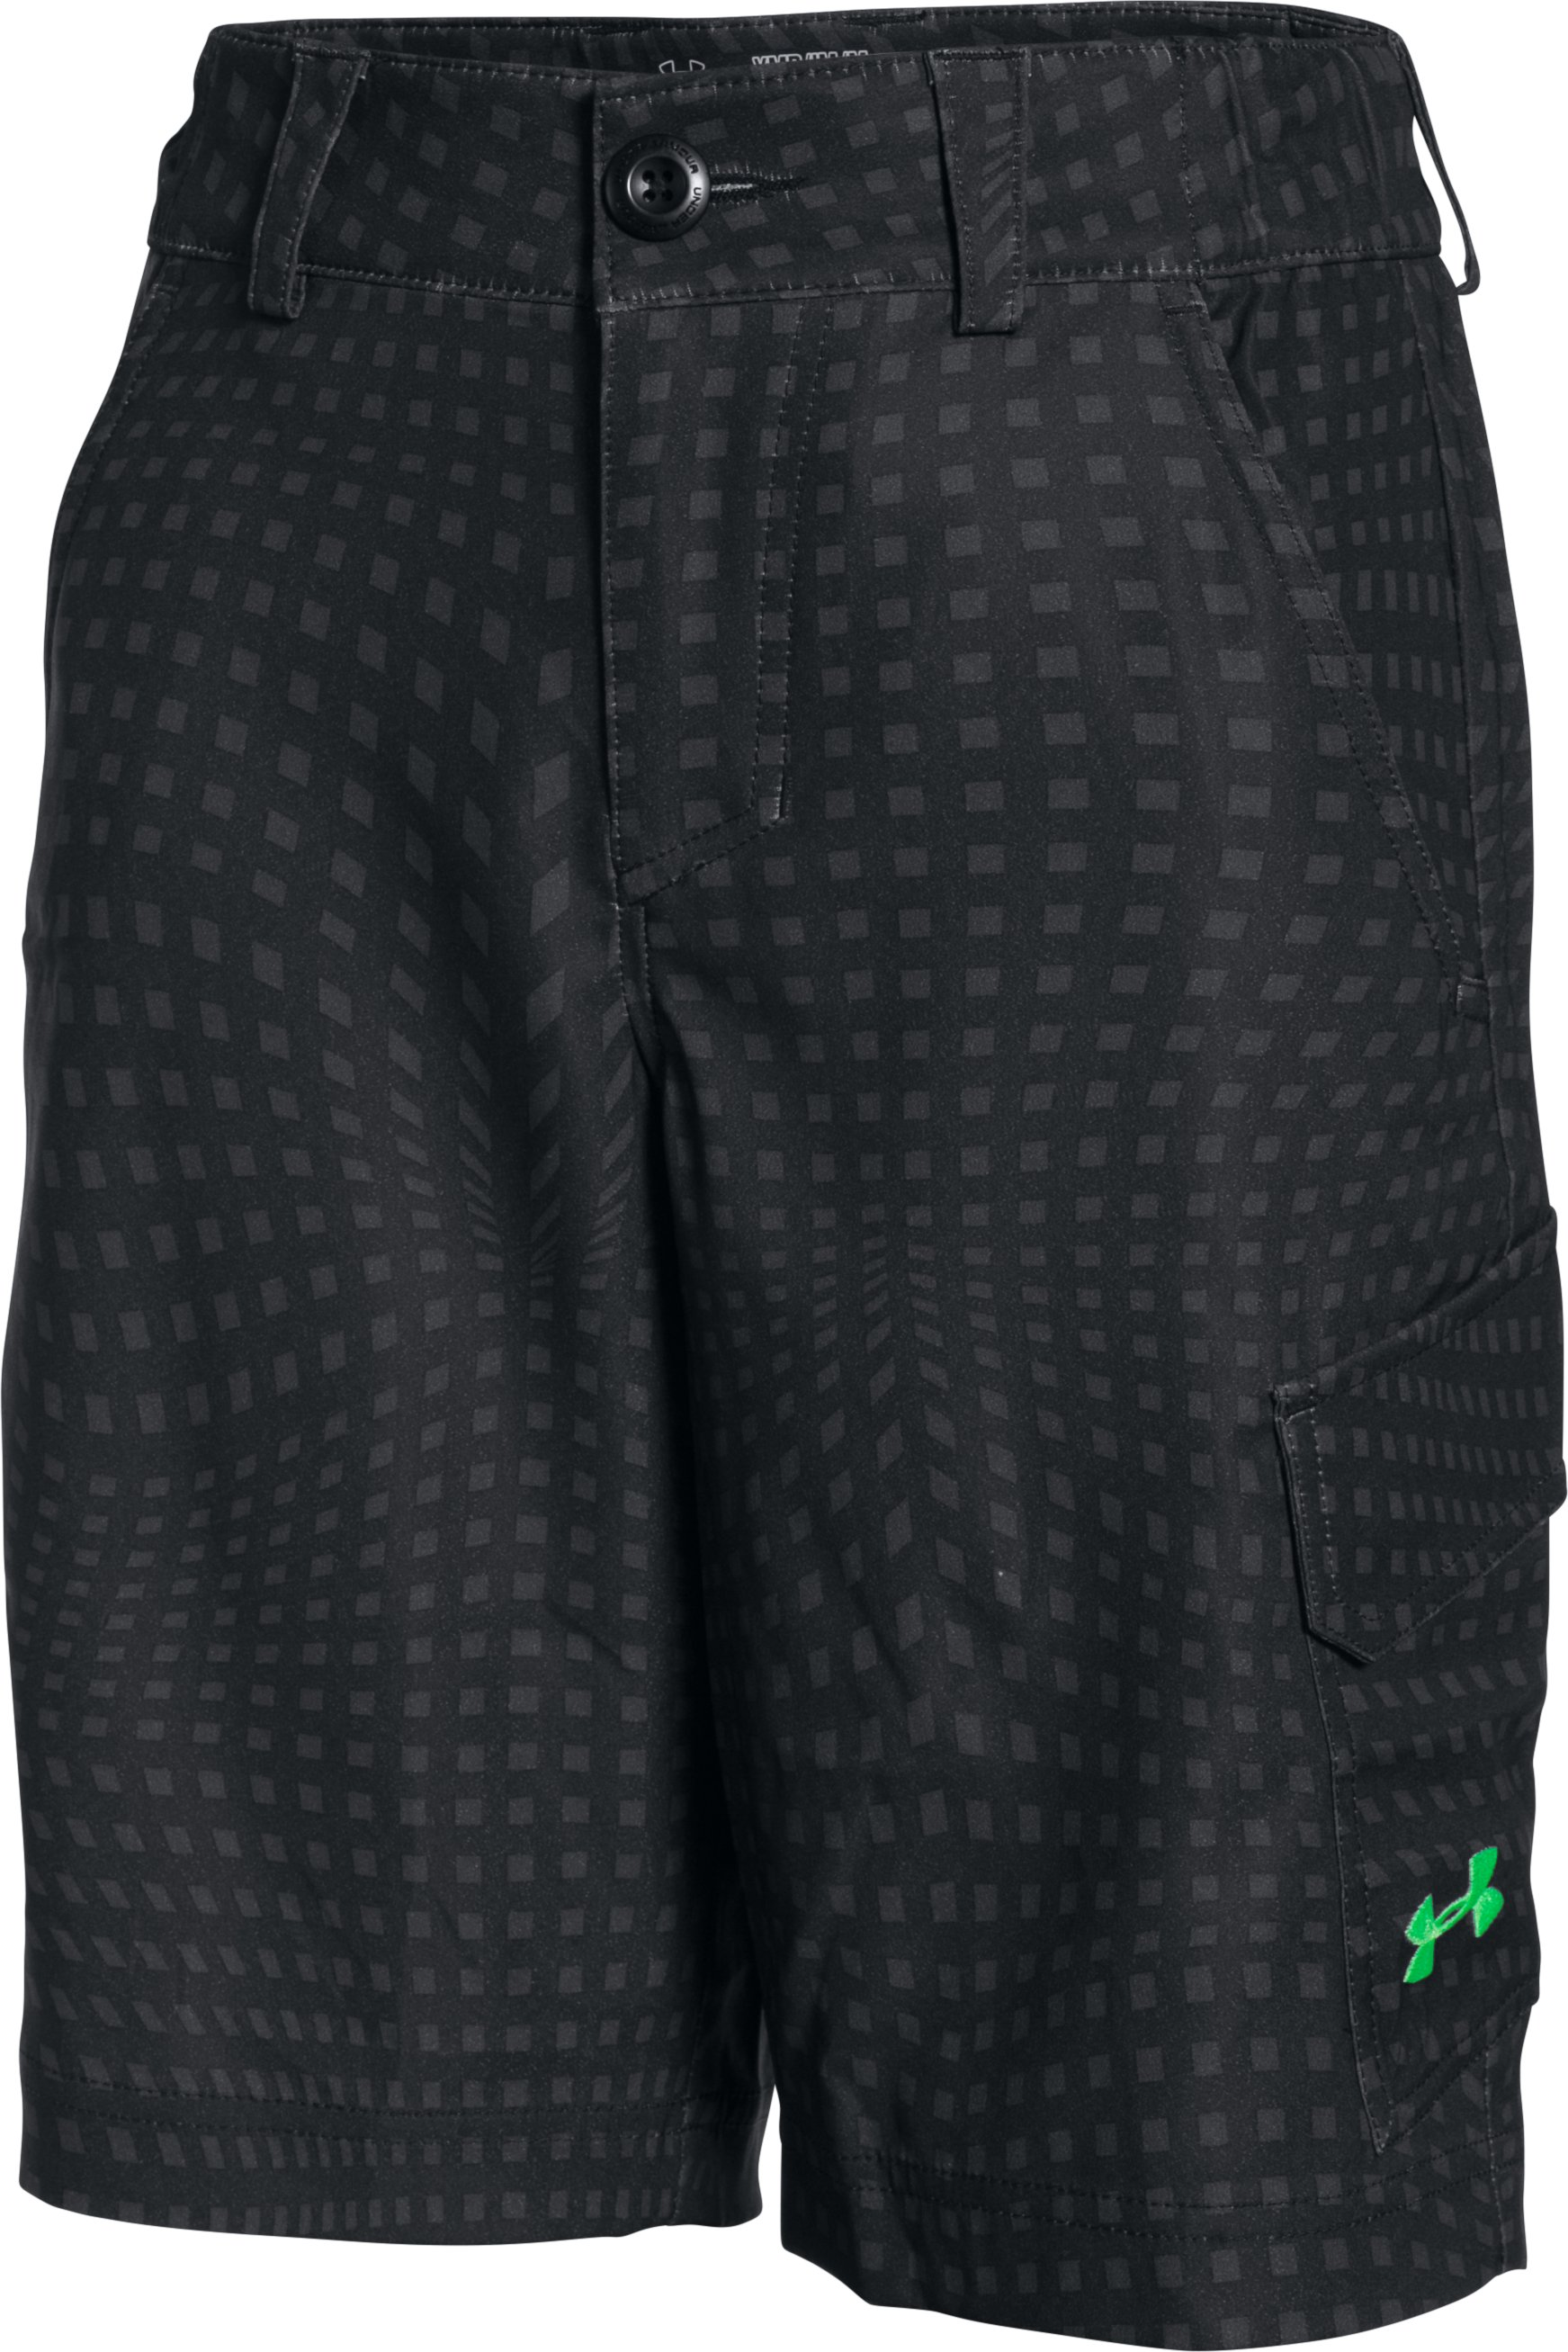 Boys' UA Shark Bait Cargo Shorts, Black